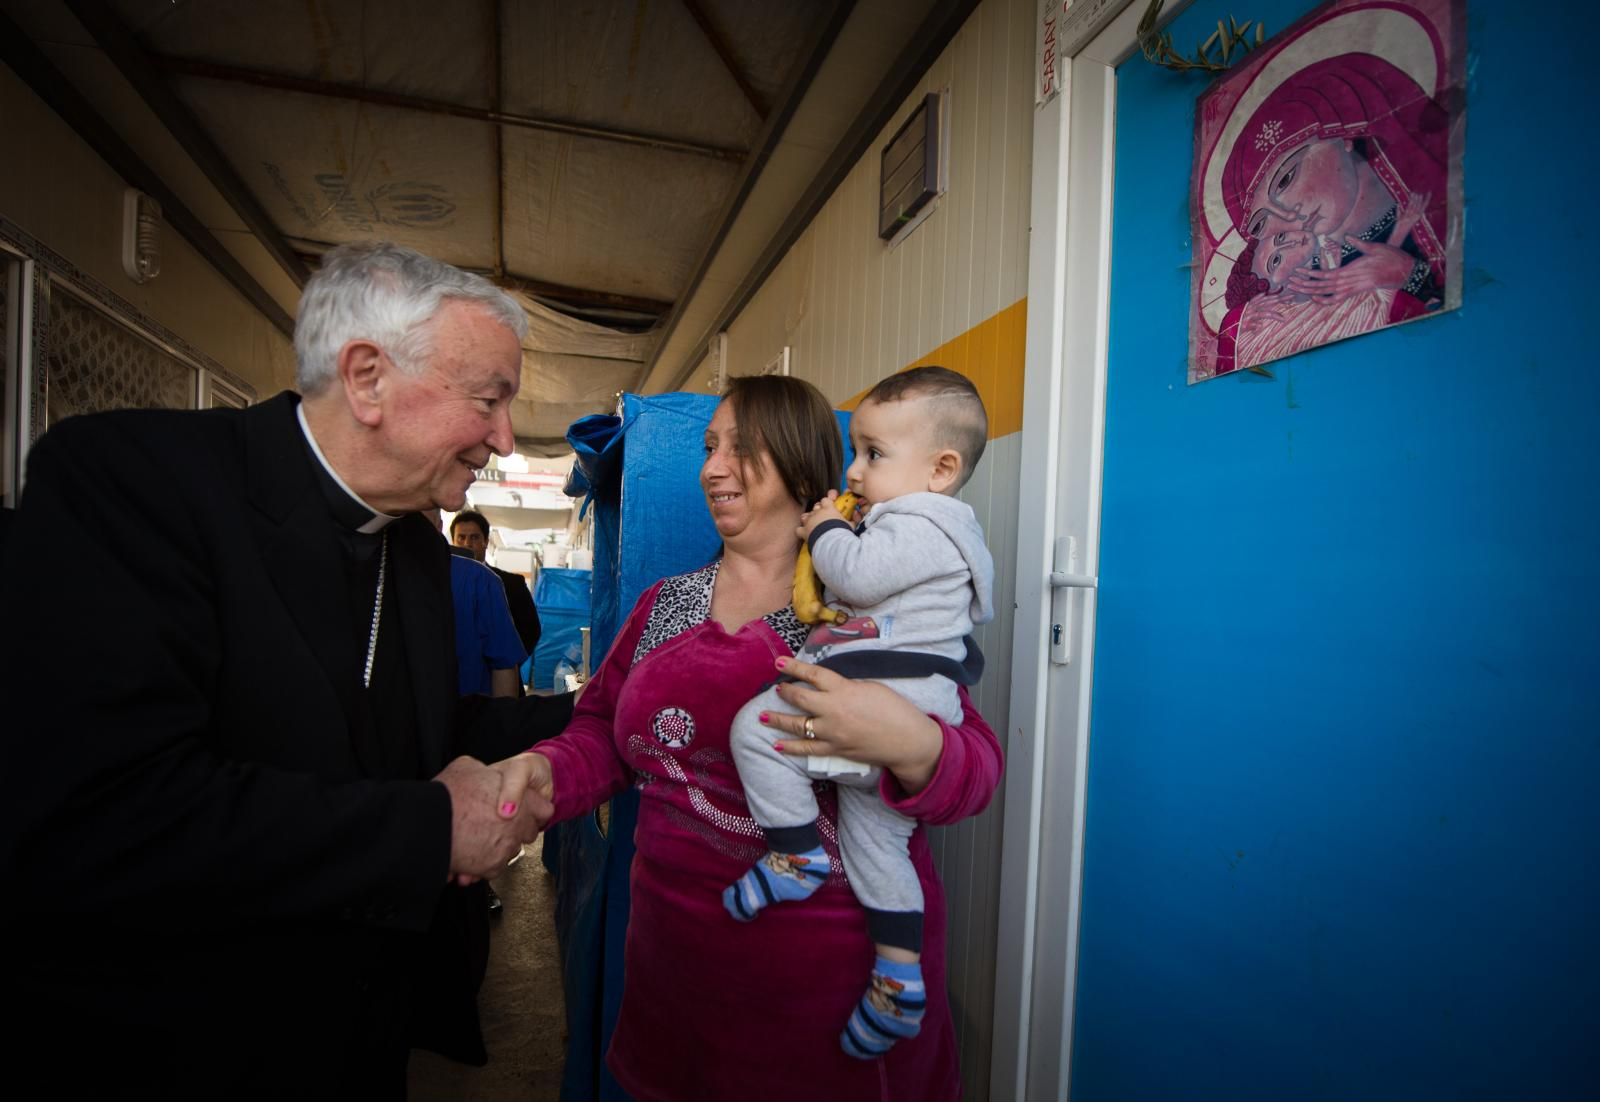 Cardinal calls for prayers ahead of Pope's visit to Iraq - Diocese of Westminster